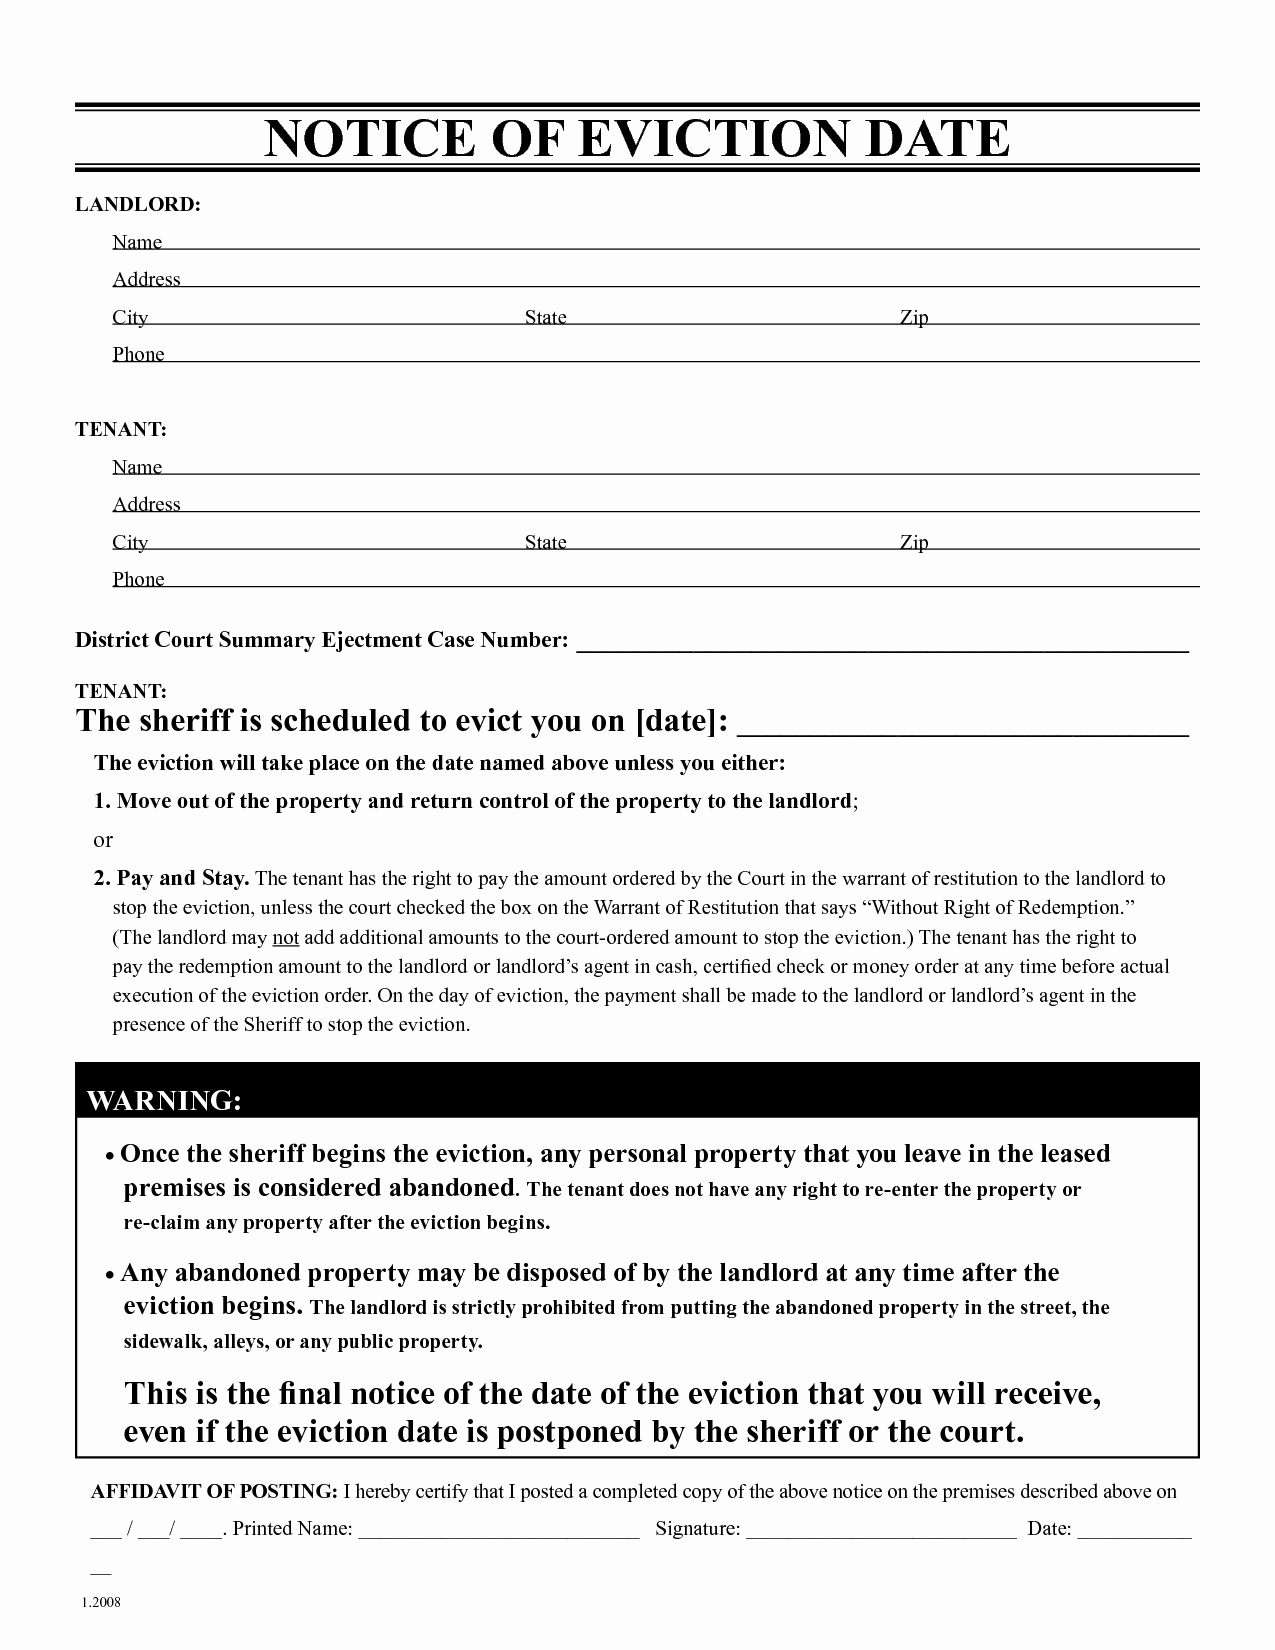 Free Printable Eviction Notice Awesome Free Eviction Notice Template